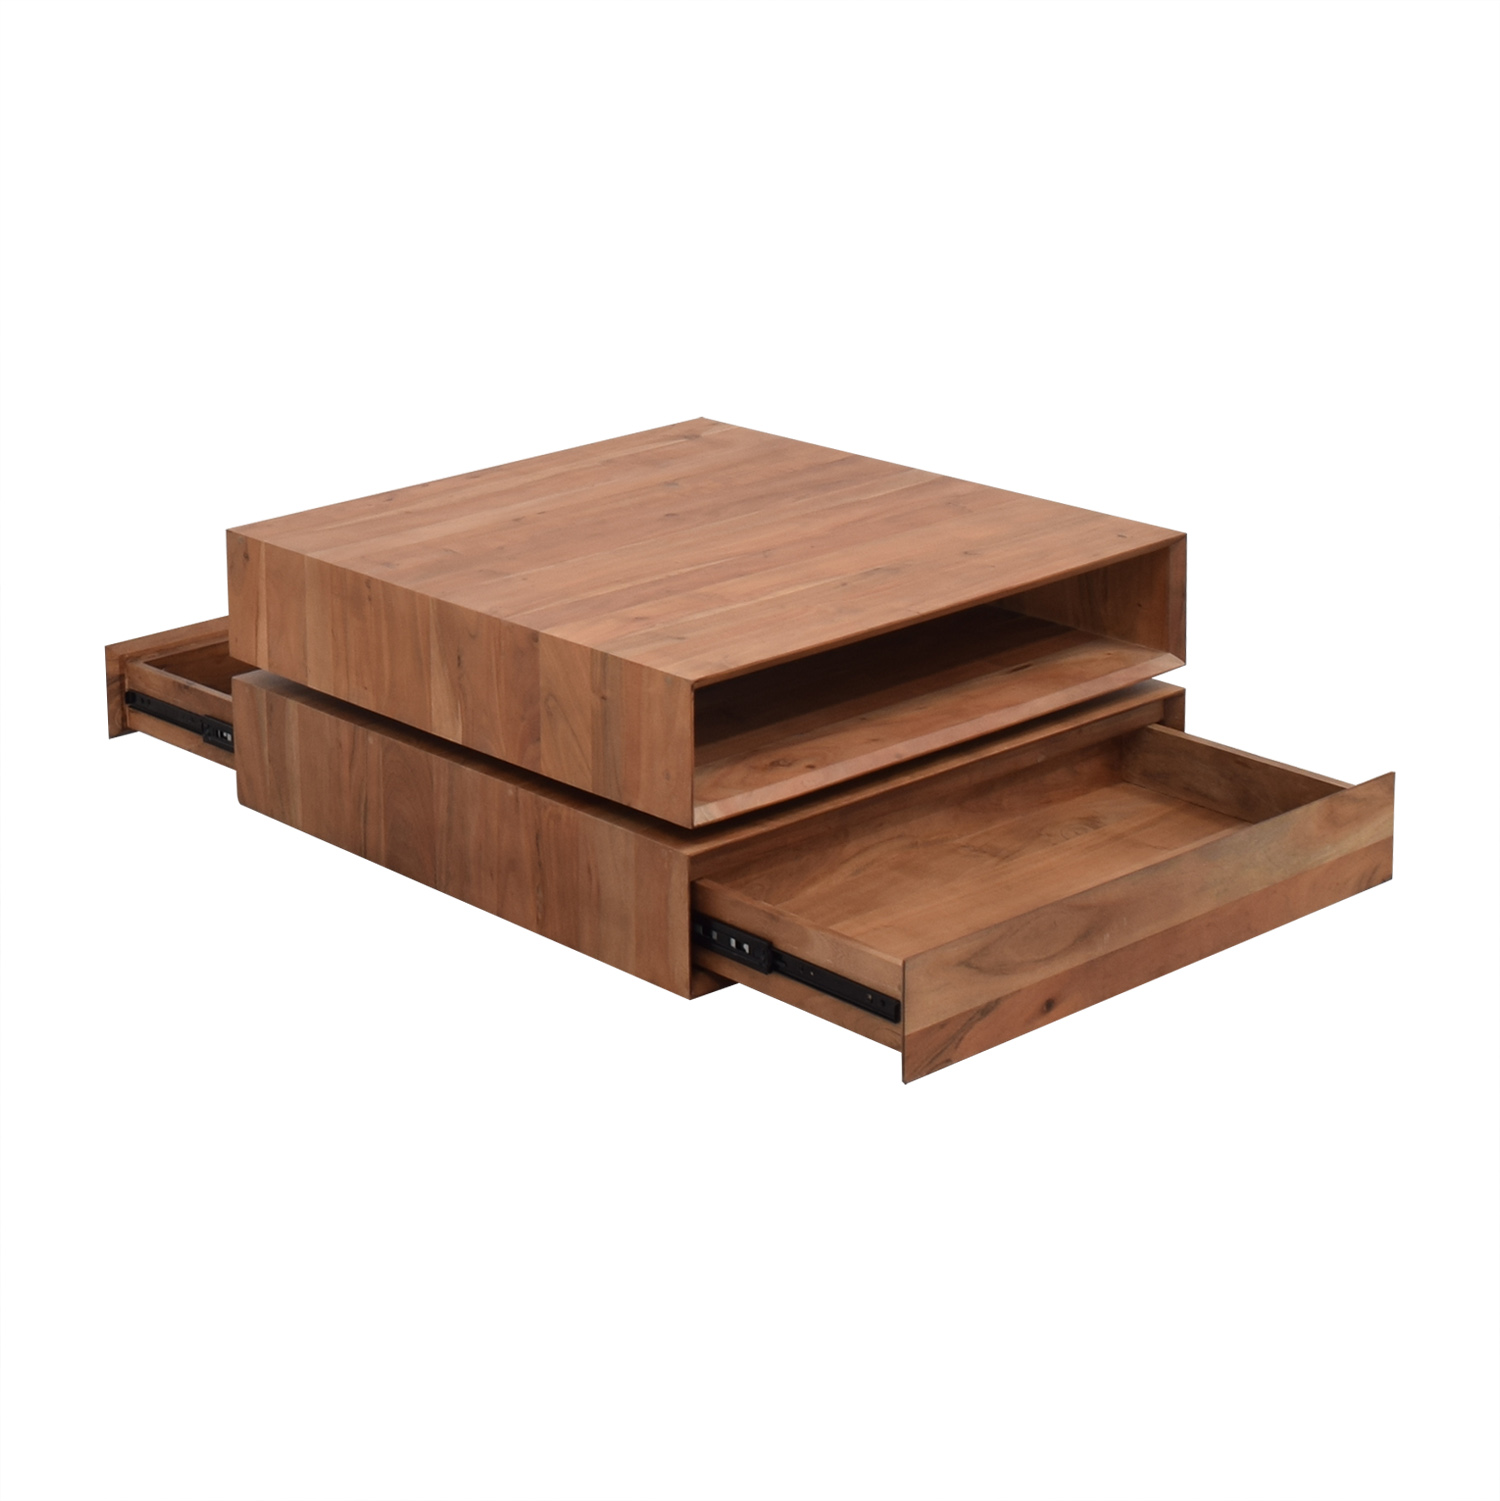 Cb2 Spin Rotating Coffee Table CB2